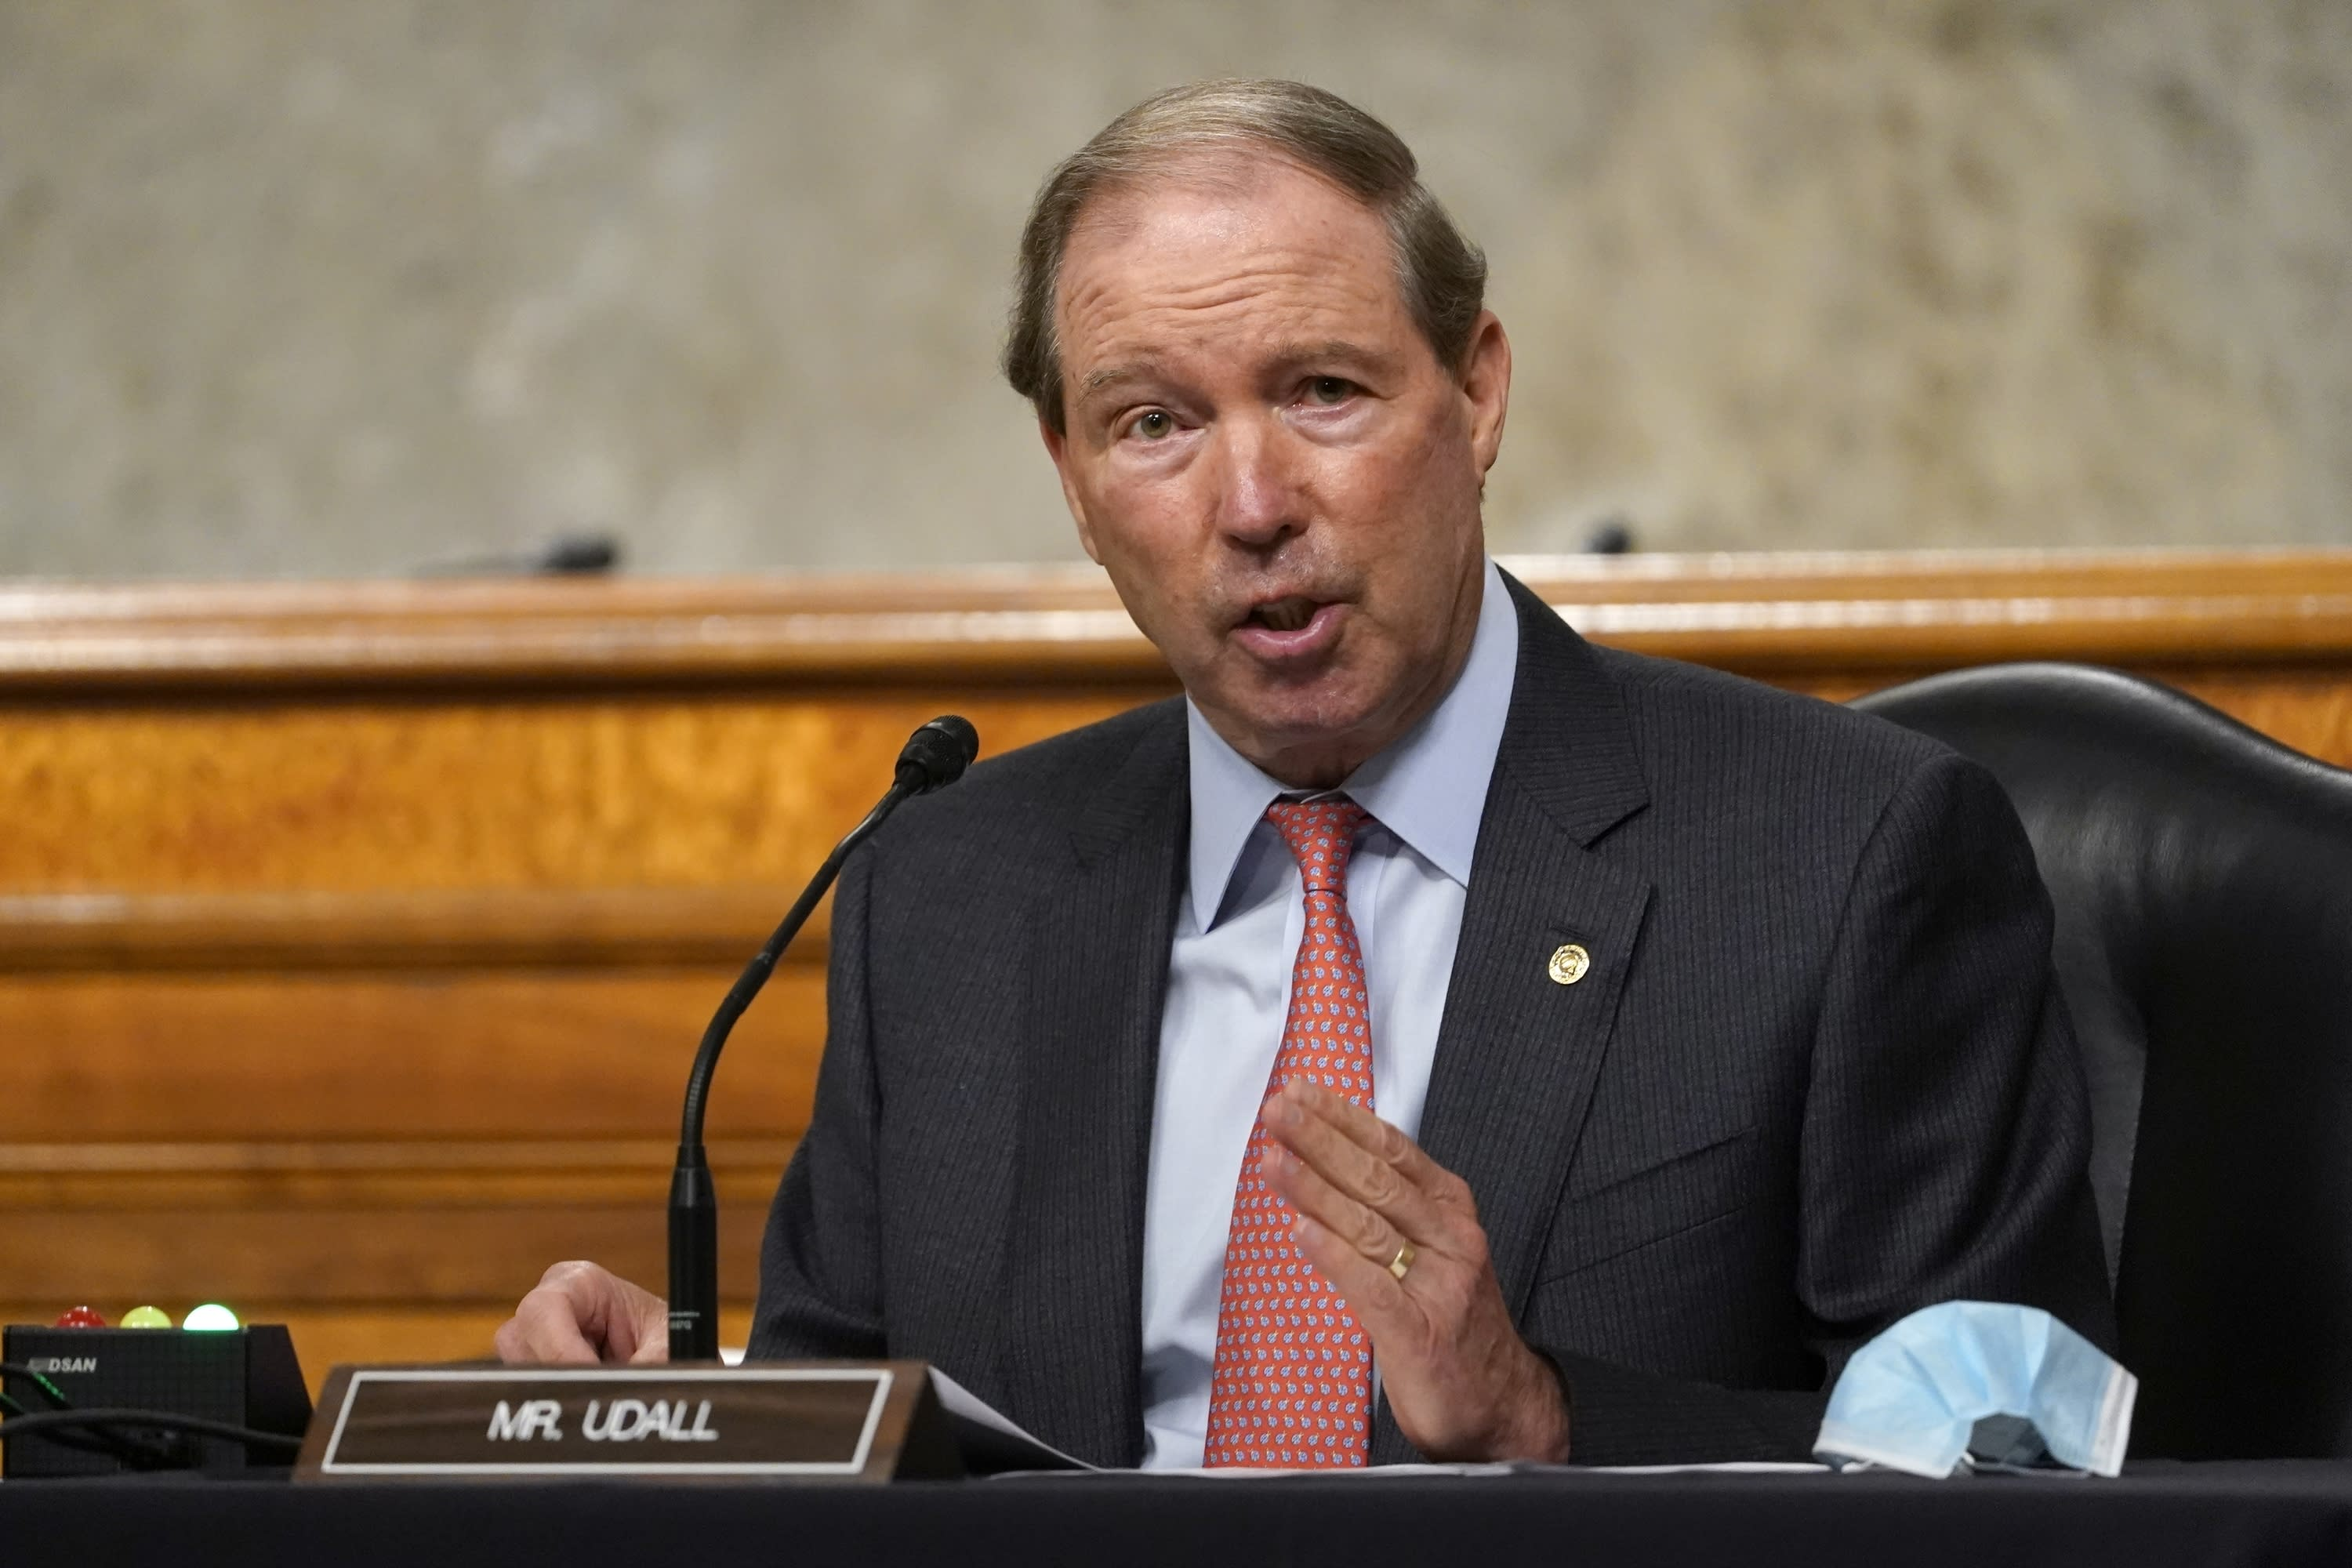 FILE - In this Sept. 24, 2020, file photo, Sen. Tom Udall, D-N.M., speaks during a Senate Foreign Relations Committee hearing on Capitol Hill in Washington on U.S. policy in a changing Middle East. Democratic U.S. senators from New Mexico have frozen the nomination process for two U.S. District Court vacancies until after the November election, citing the president's politicization of the process. Sens. Tom Udall, who is not running for re-election as he retires at the end of the year, and Martin Heinrich, not seen, put the brakes on appointments prior to the death of Justice Ruth Bader Ginsburg, in response a Trump appearance at the White House to promote his future judiciary appointments and denounce a radical leftwing movement. (AP Photo/Susan Walsh, Pool, File)